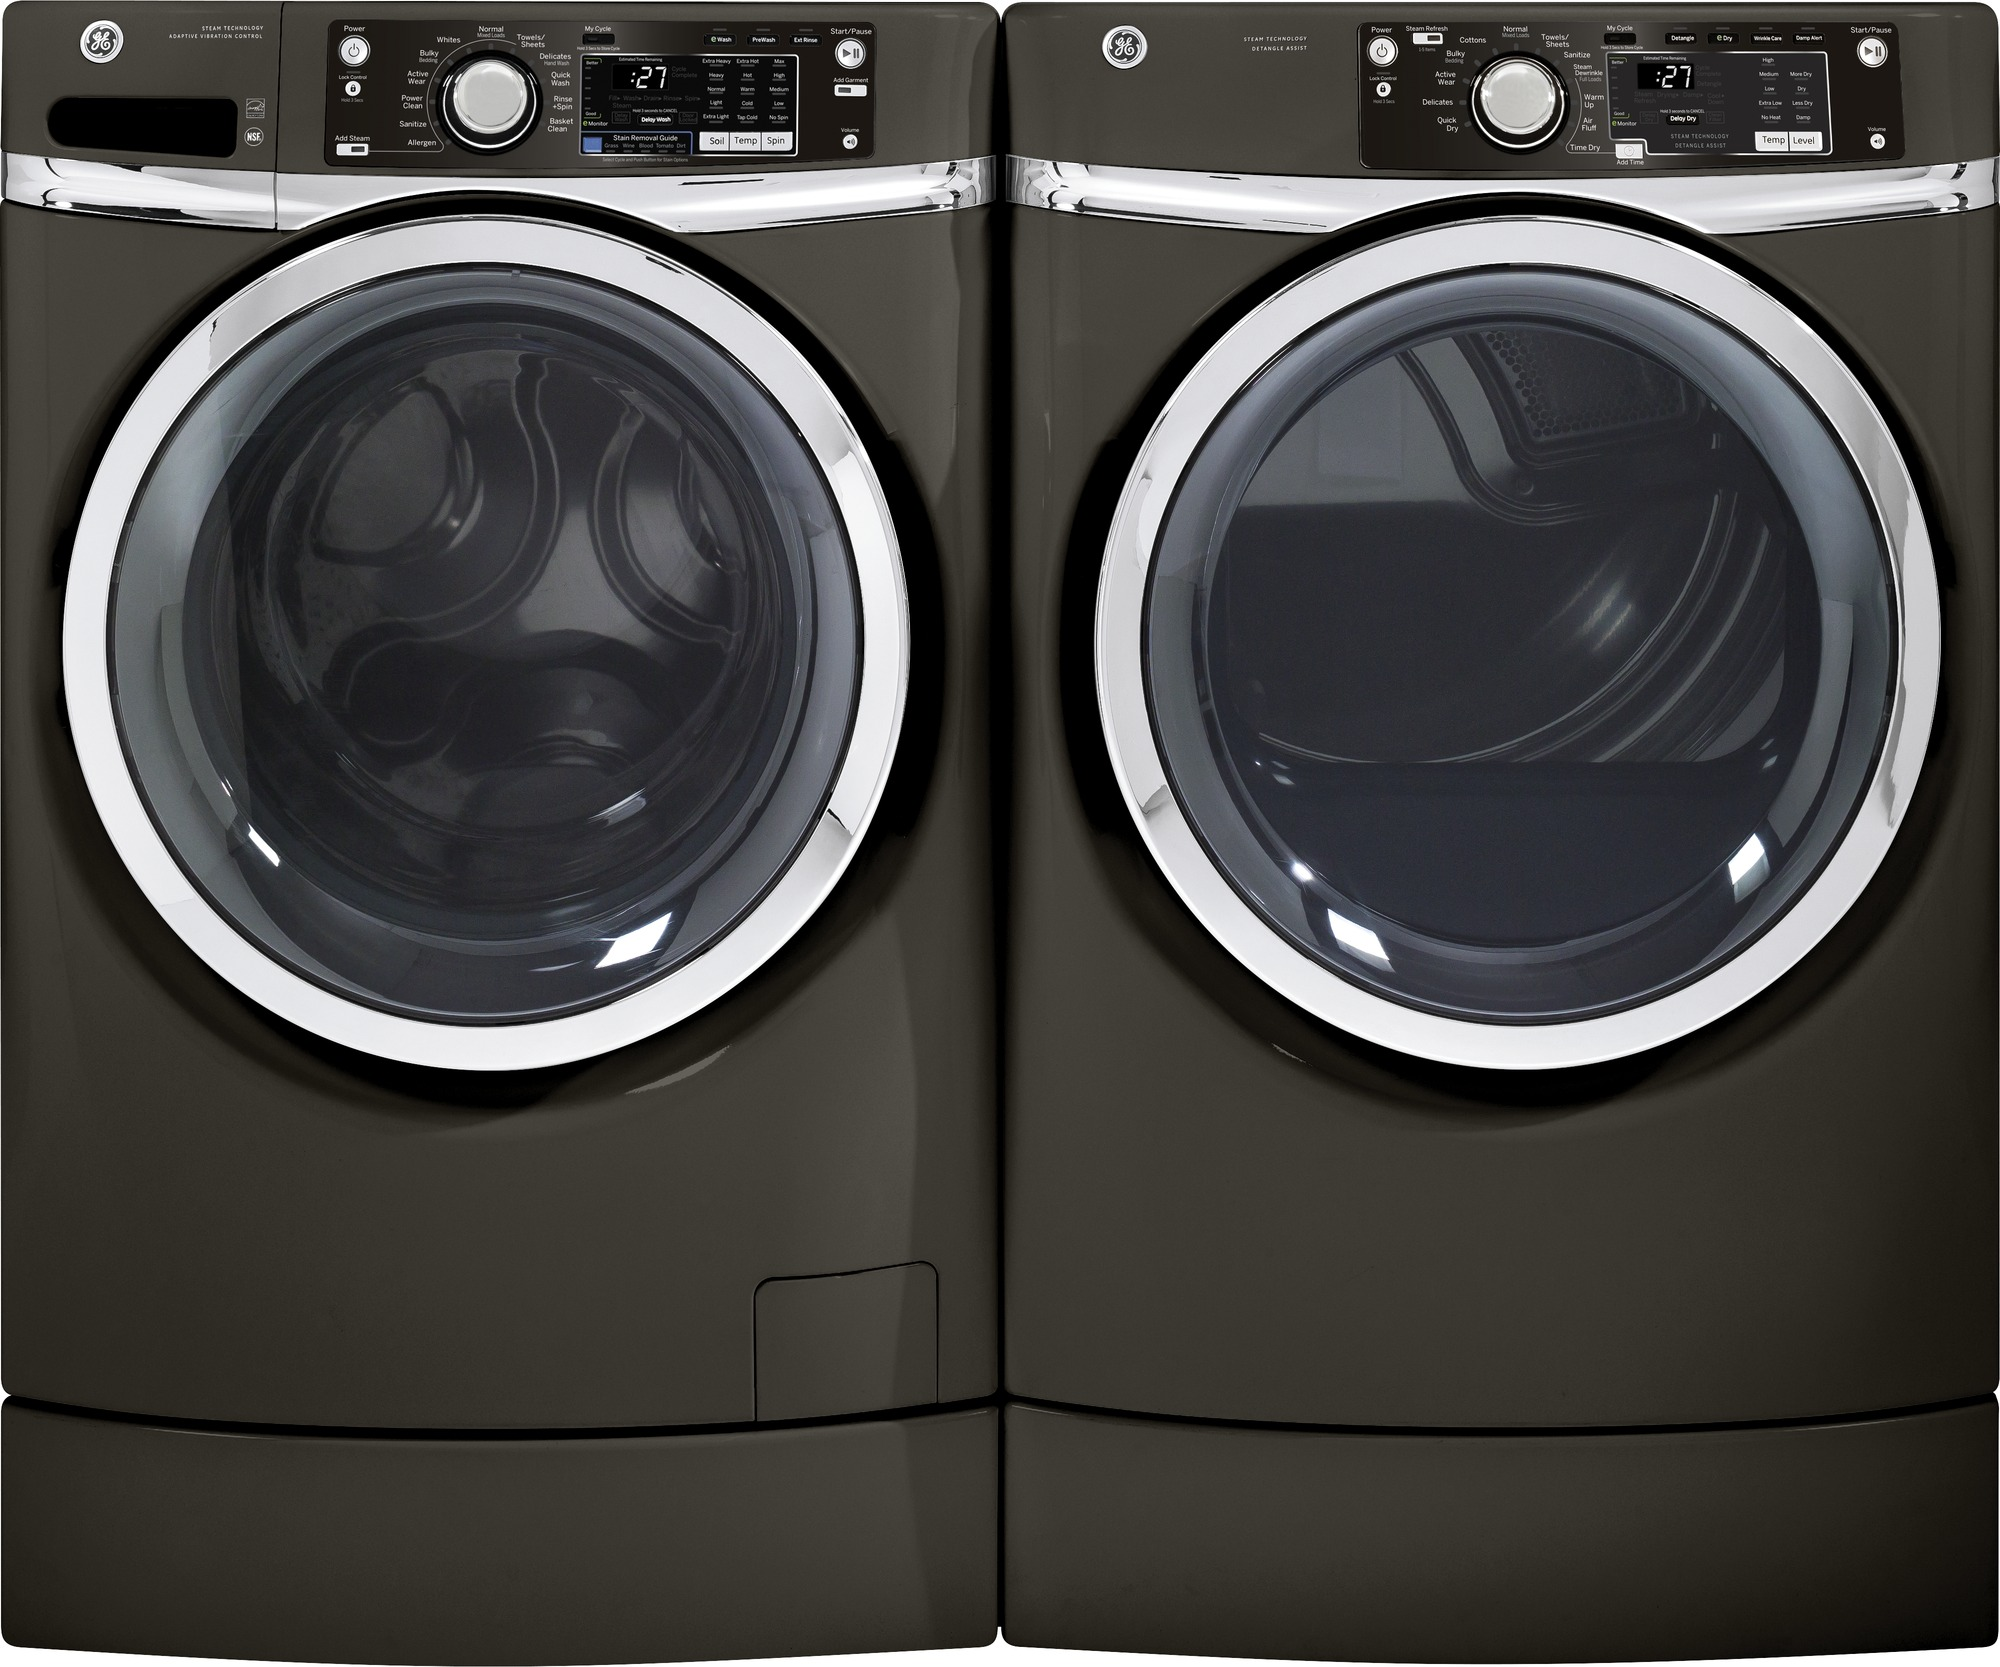 GE Appliances GFWR2705HMC 4.5 cu. ft. RightHeight™ Design Front-Load Washer - Metallic Carbon